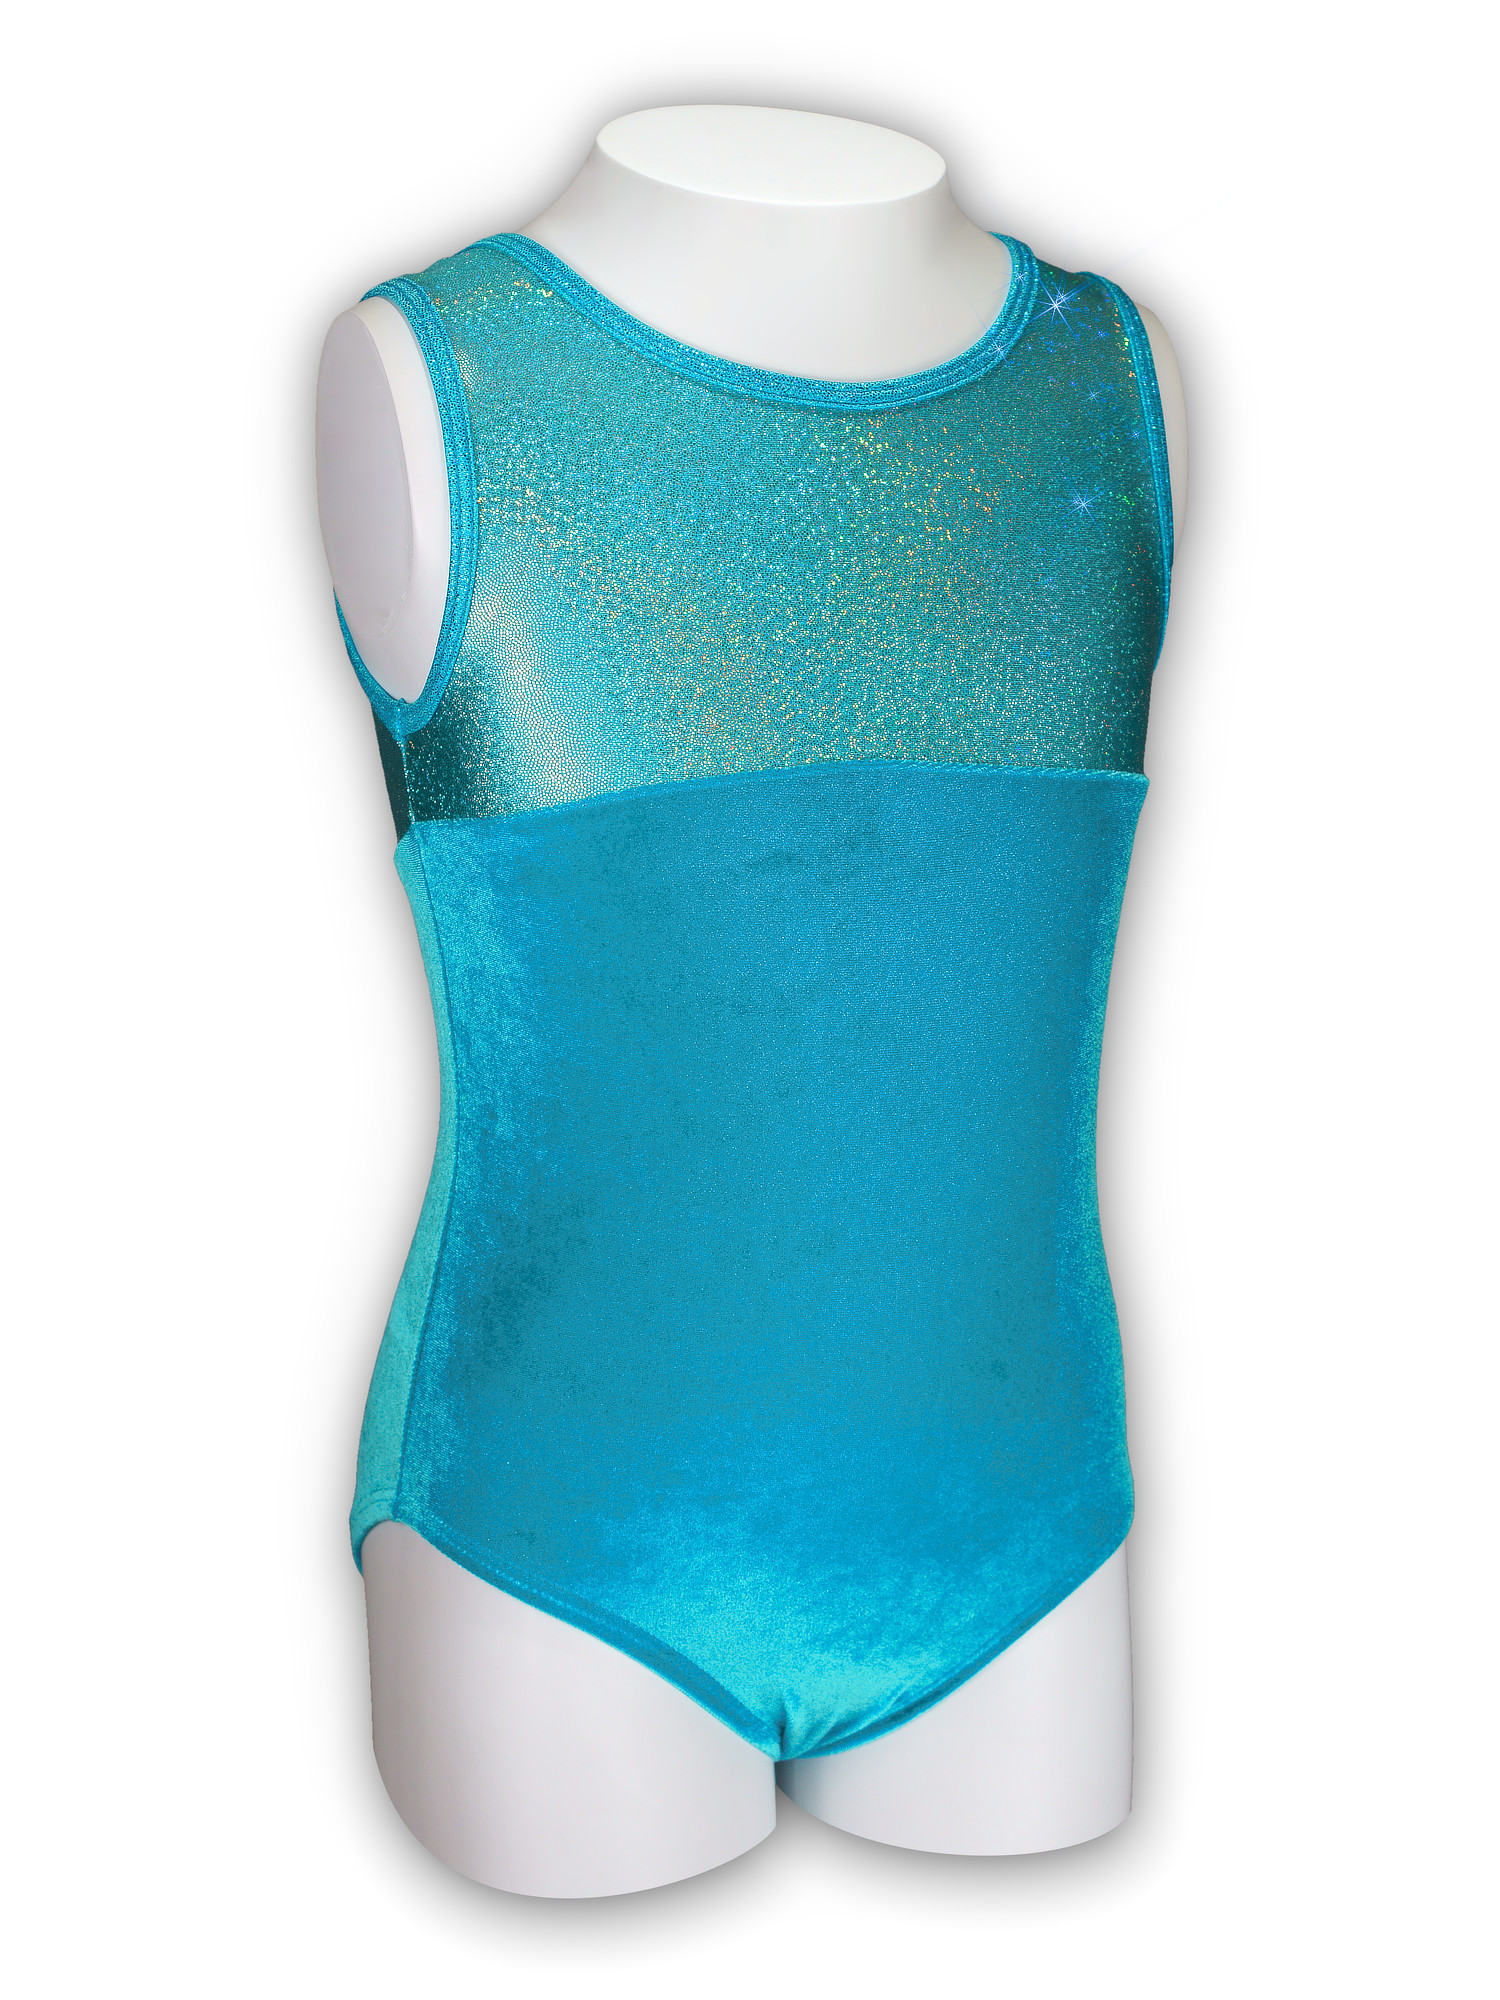 Gymnastics Leotard for Girls - Princess/Turquoise Velvet - Leap Gear by Pelle - 2 | Child XX-Small